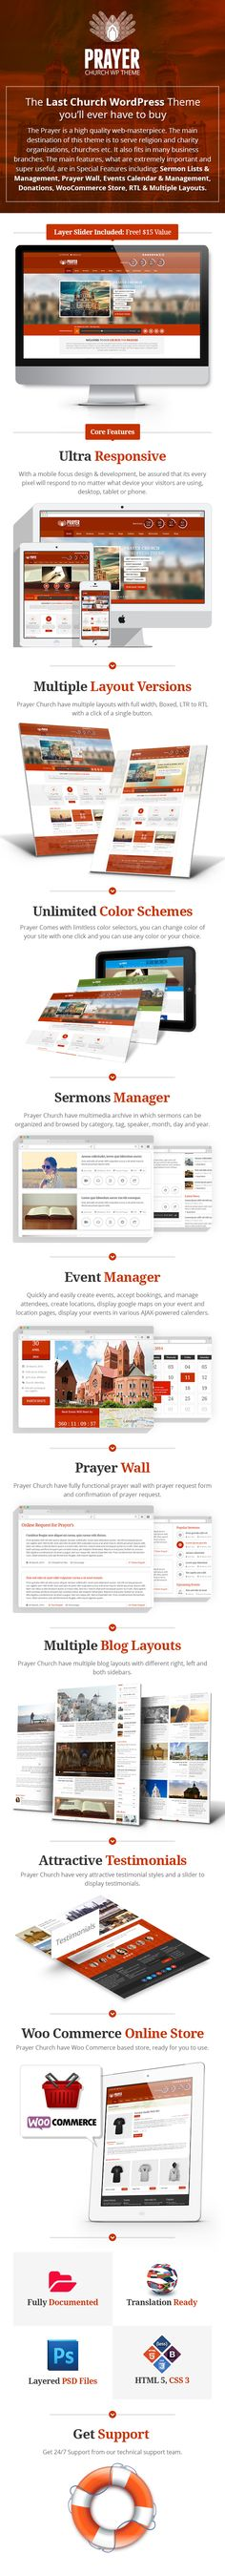 Prayer Church Responsive WordPress Theme - Download theme here : http://themeforest.net/item/prayer-church-responsive-wordpress-theme/8159776?ref=pxcr